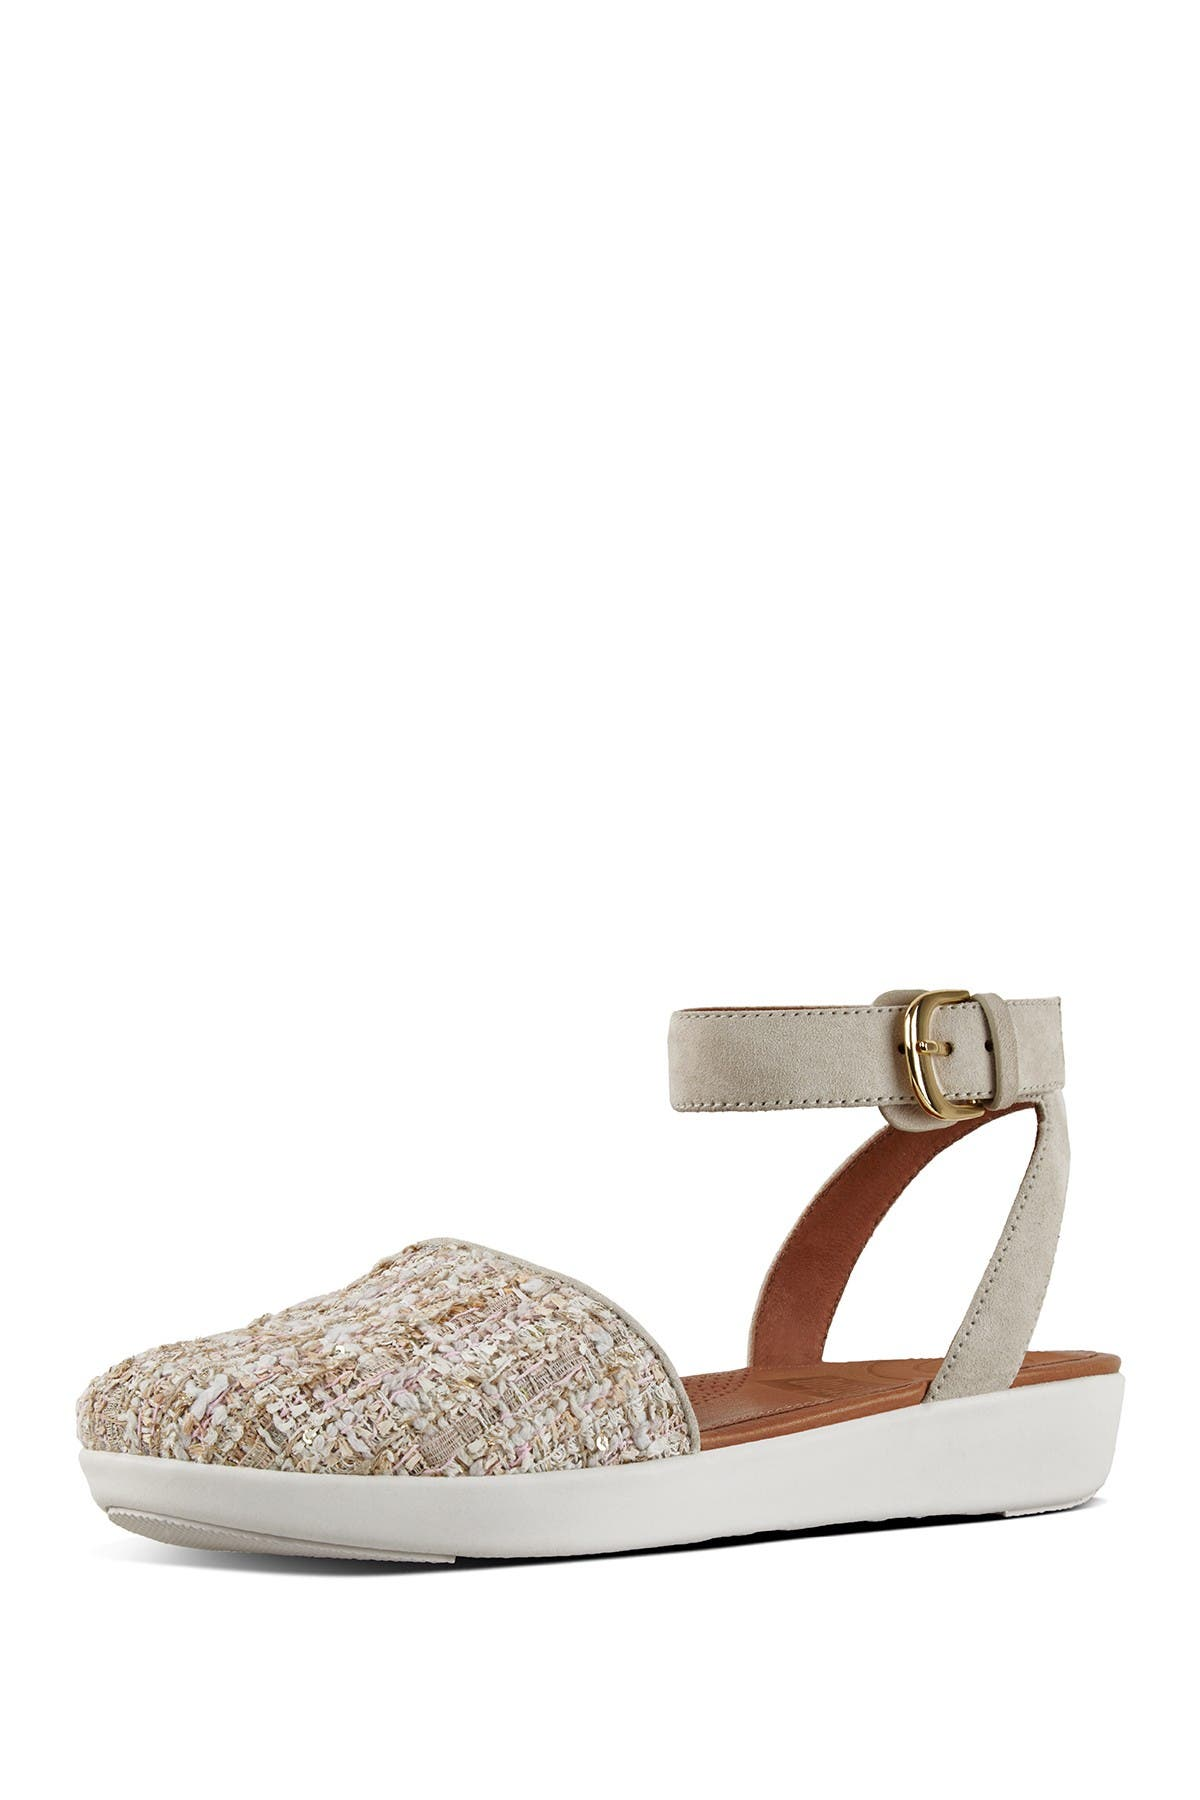 Image of Fitflop Cova Ankle Strap Sandal